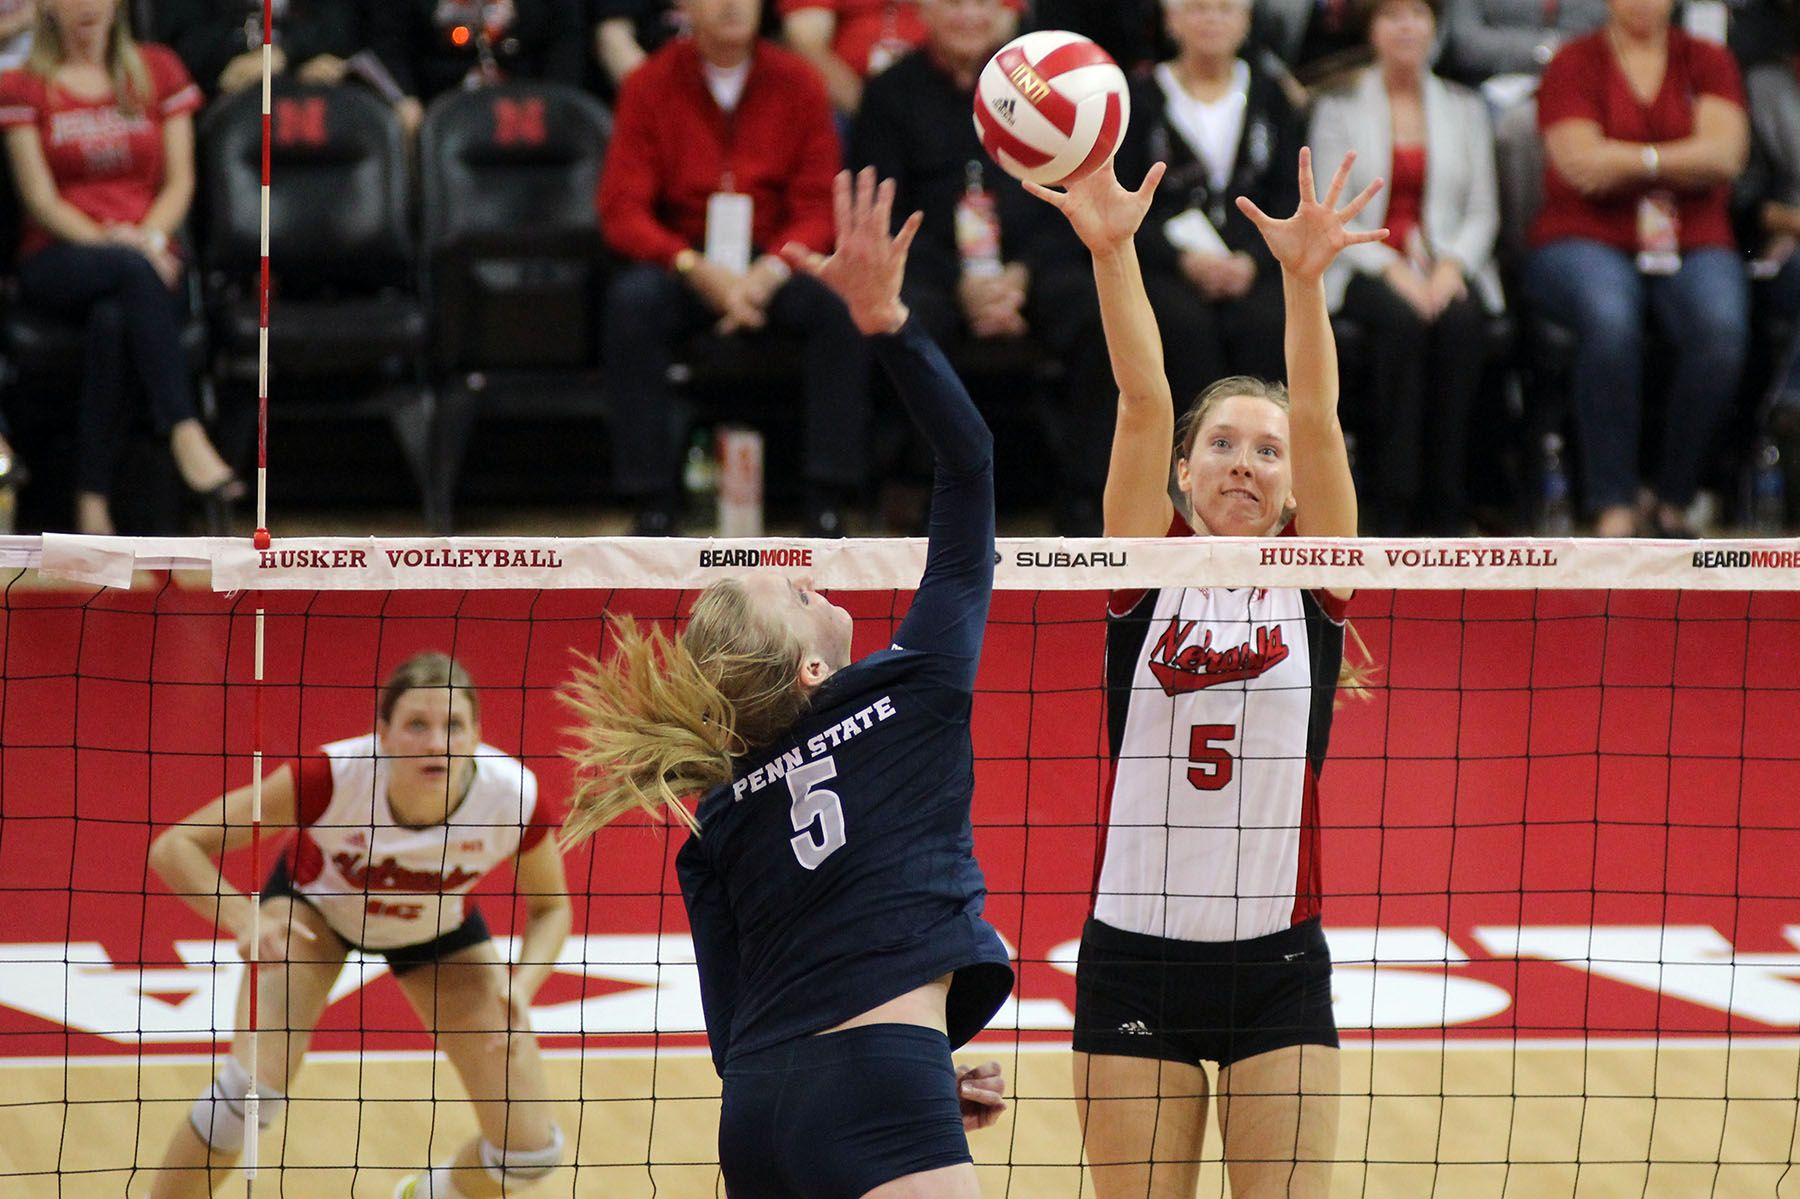 Photos Husker Volleyball Rallies To Upset No 3 Penn State 3 1 Volleyball National Champions Volleyball Team